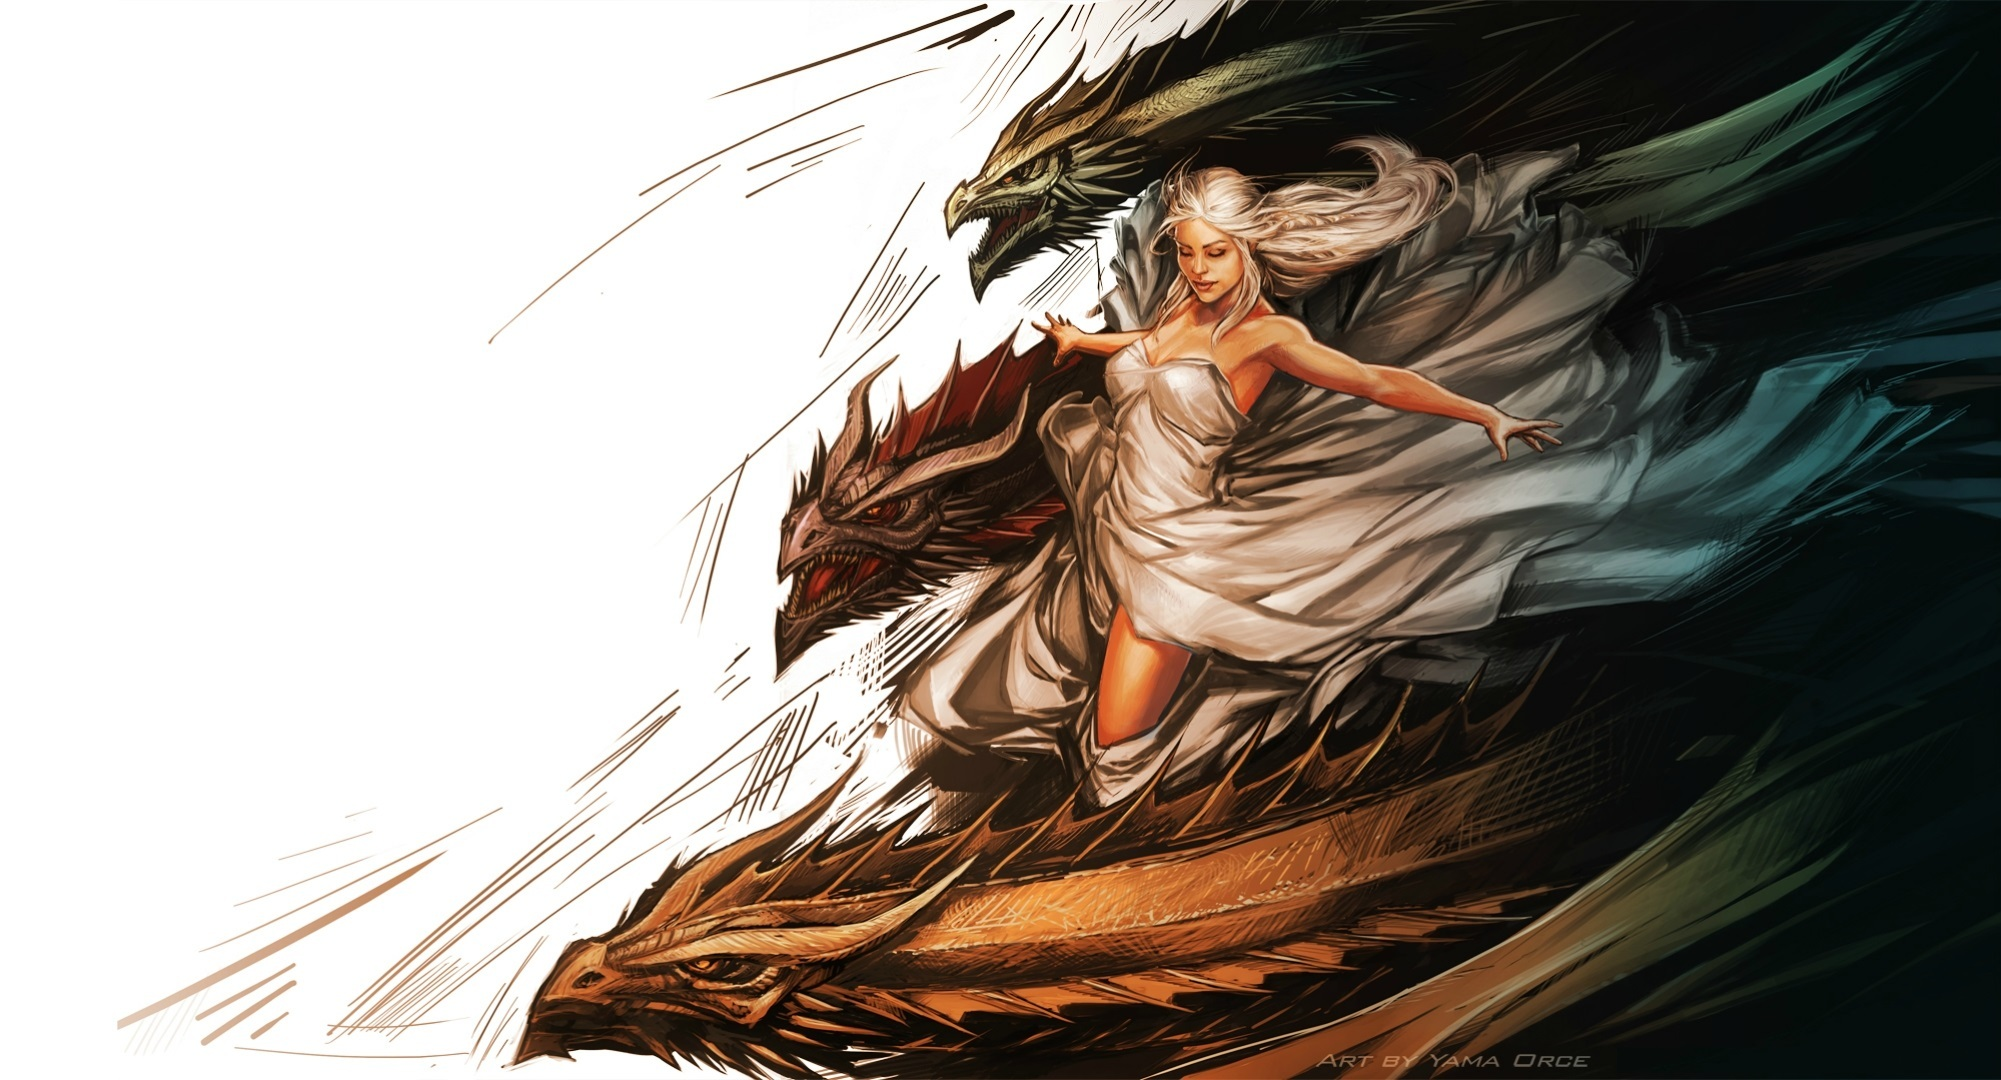 Game of thrones Daenerys Targaryen painting art dragons dragon fantasy 2001x1080